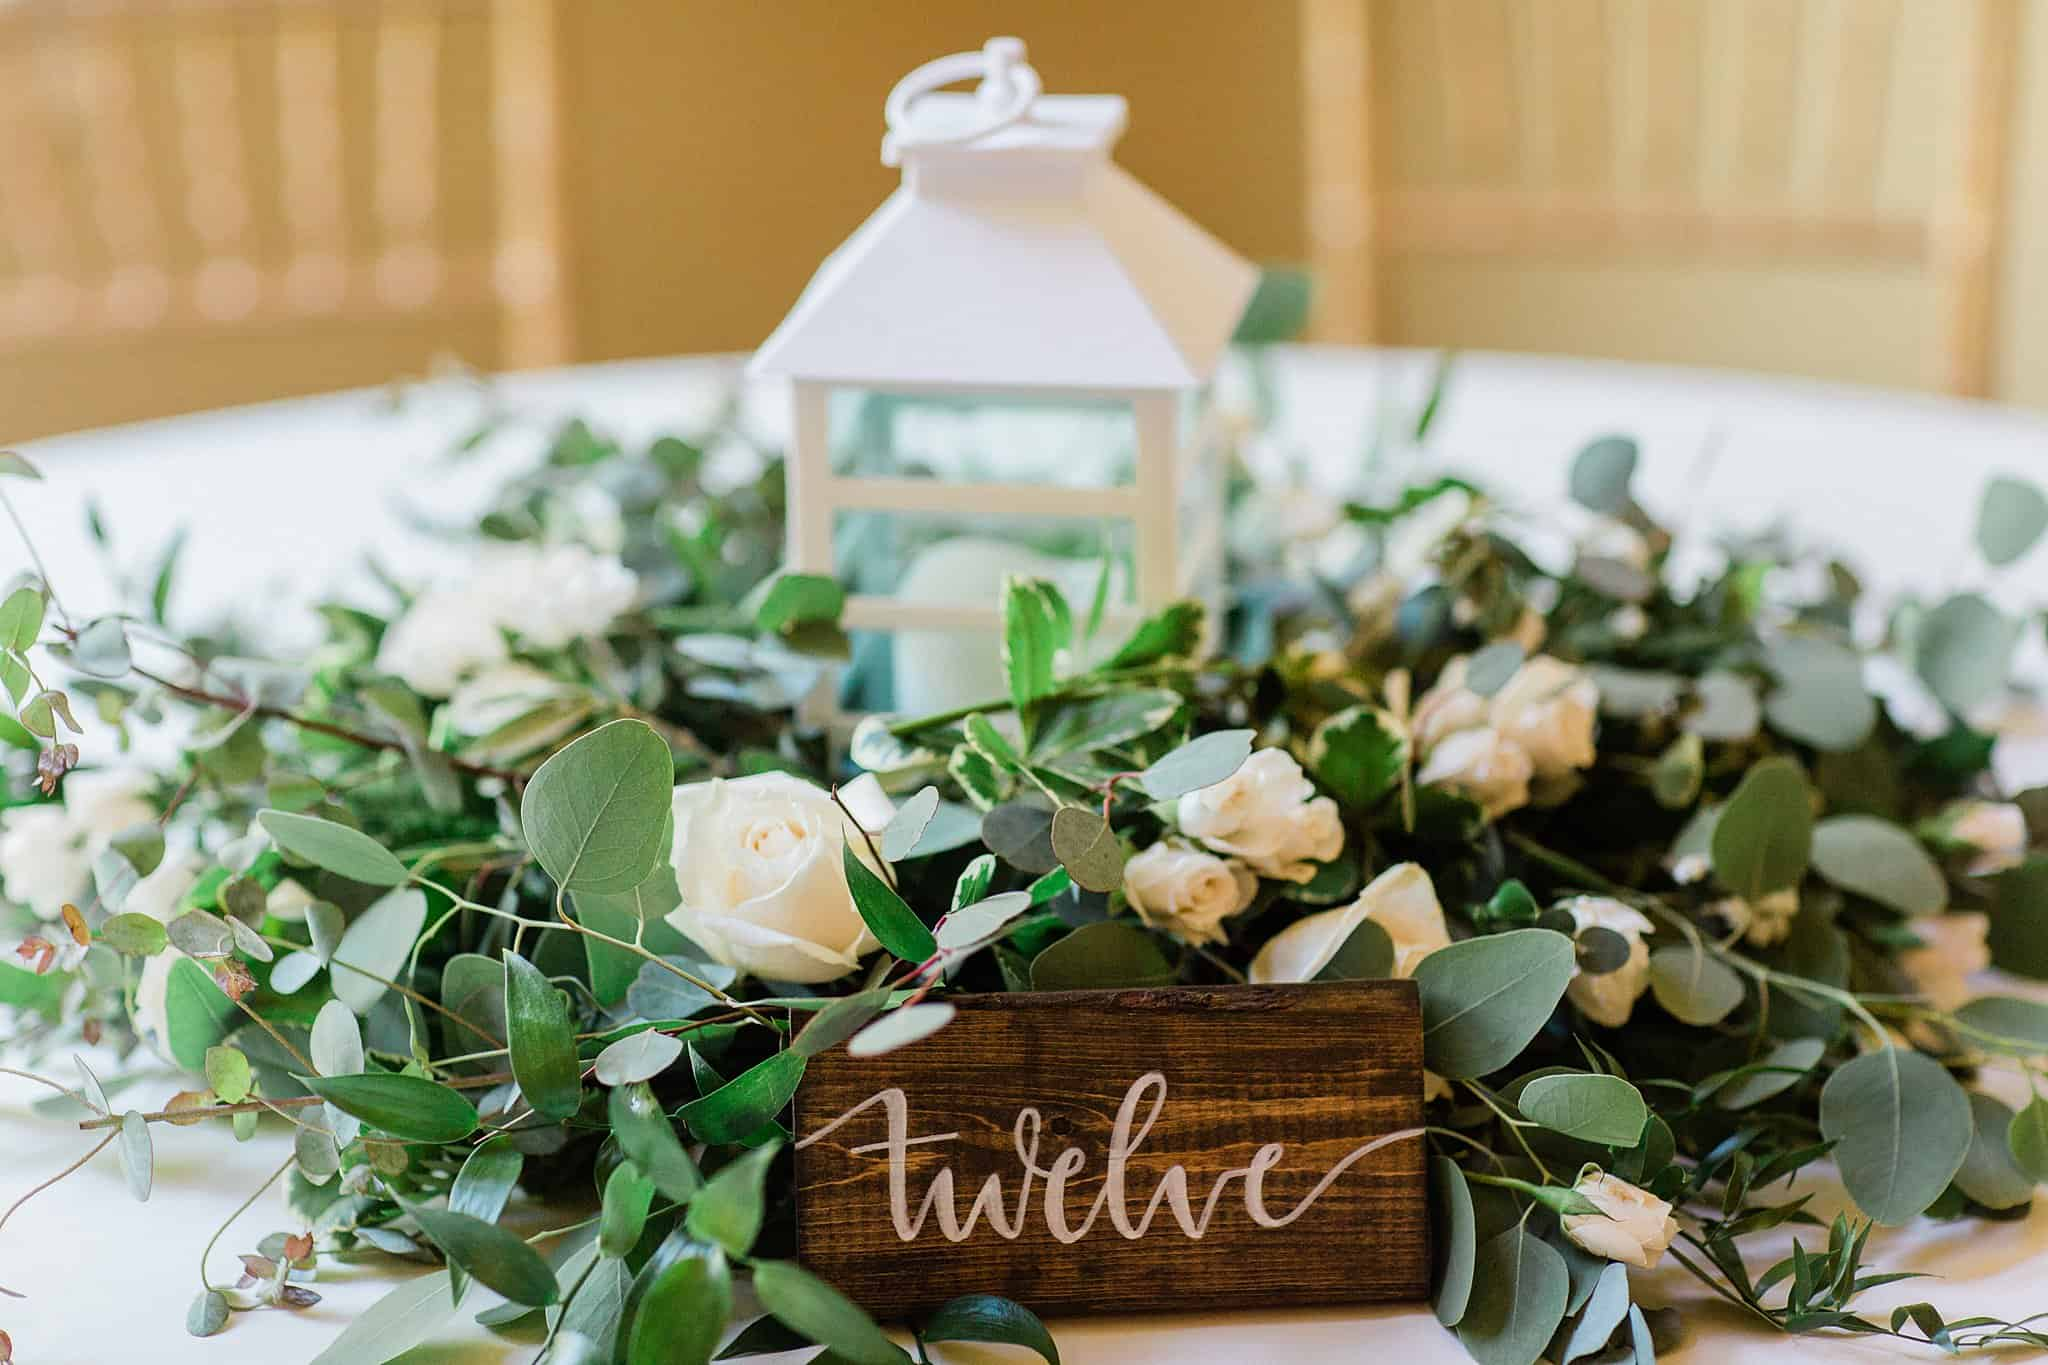 Centerpiece on guest table at wedding with white lantern, eucalyptus, white roses and table sign